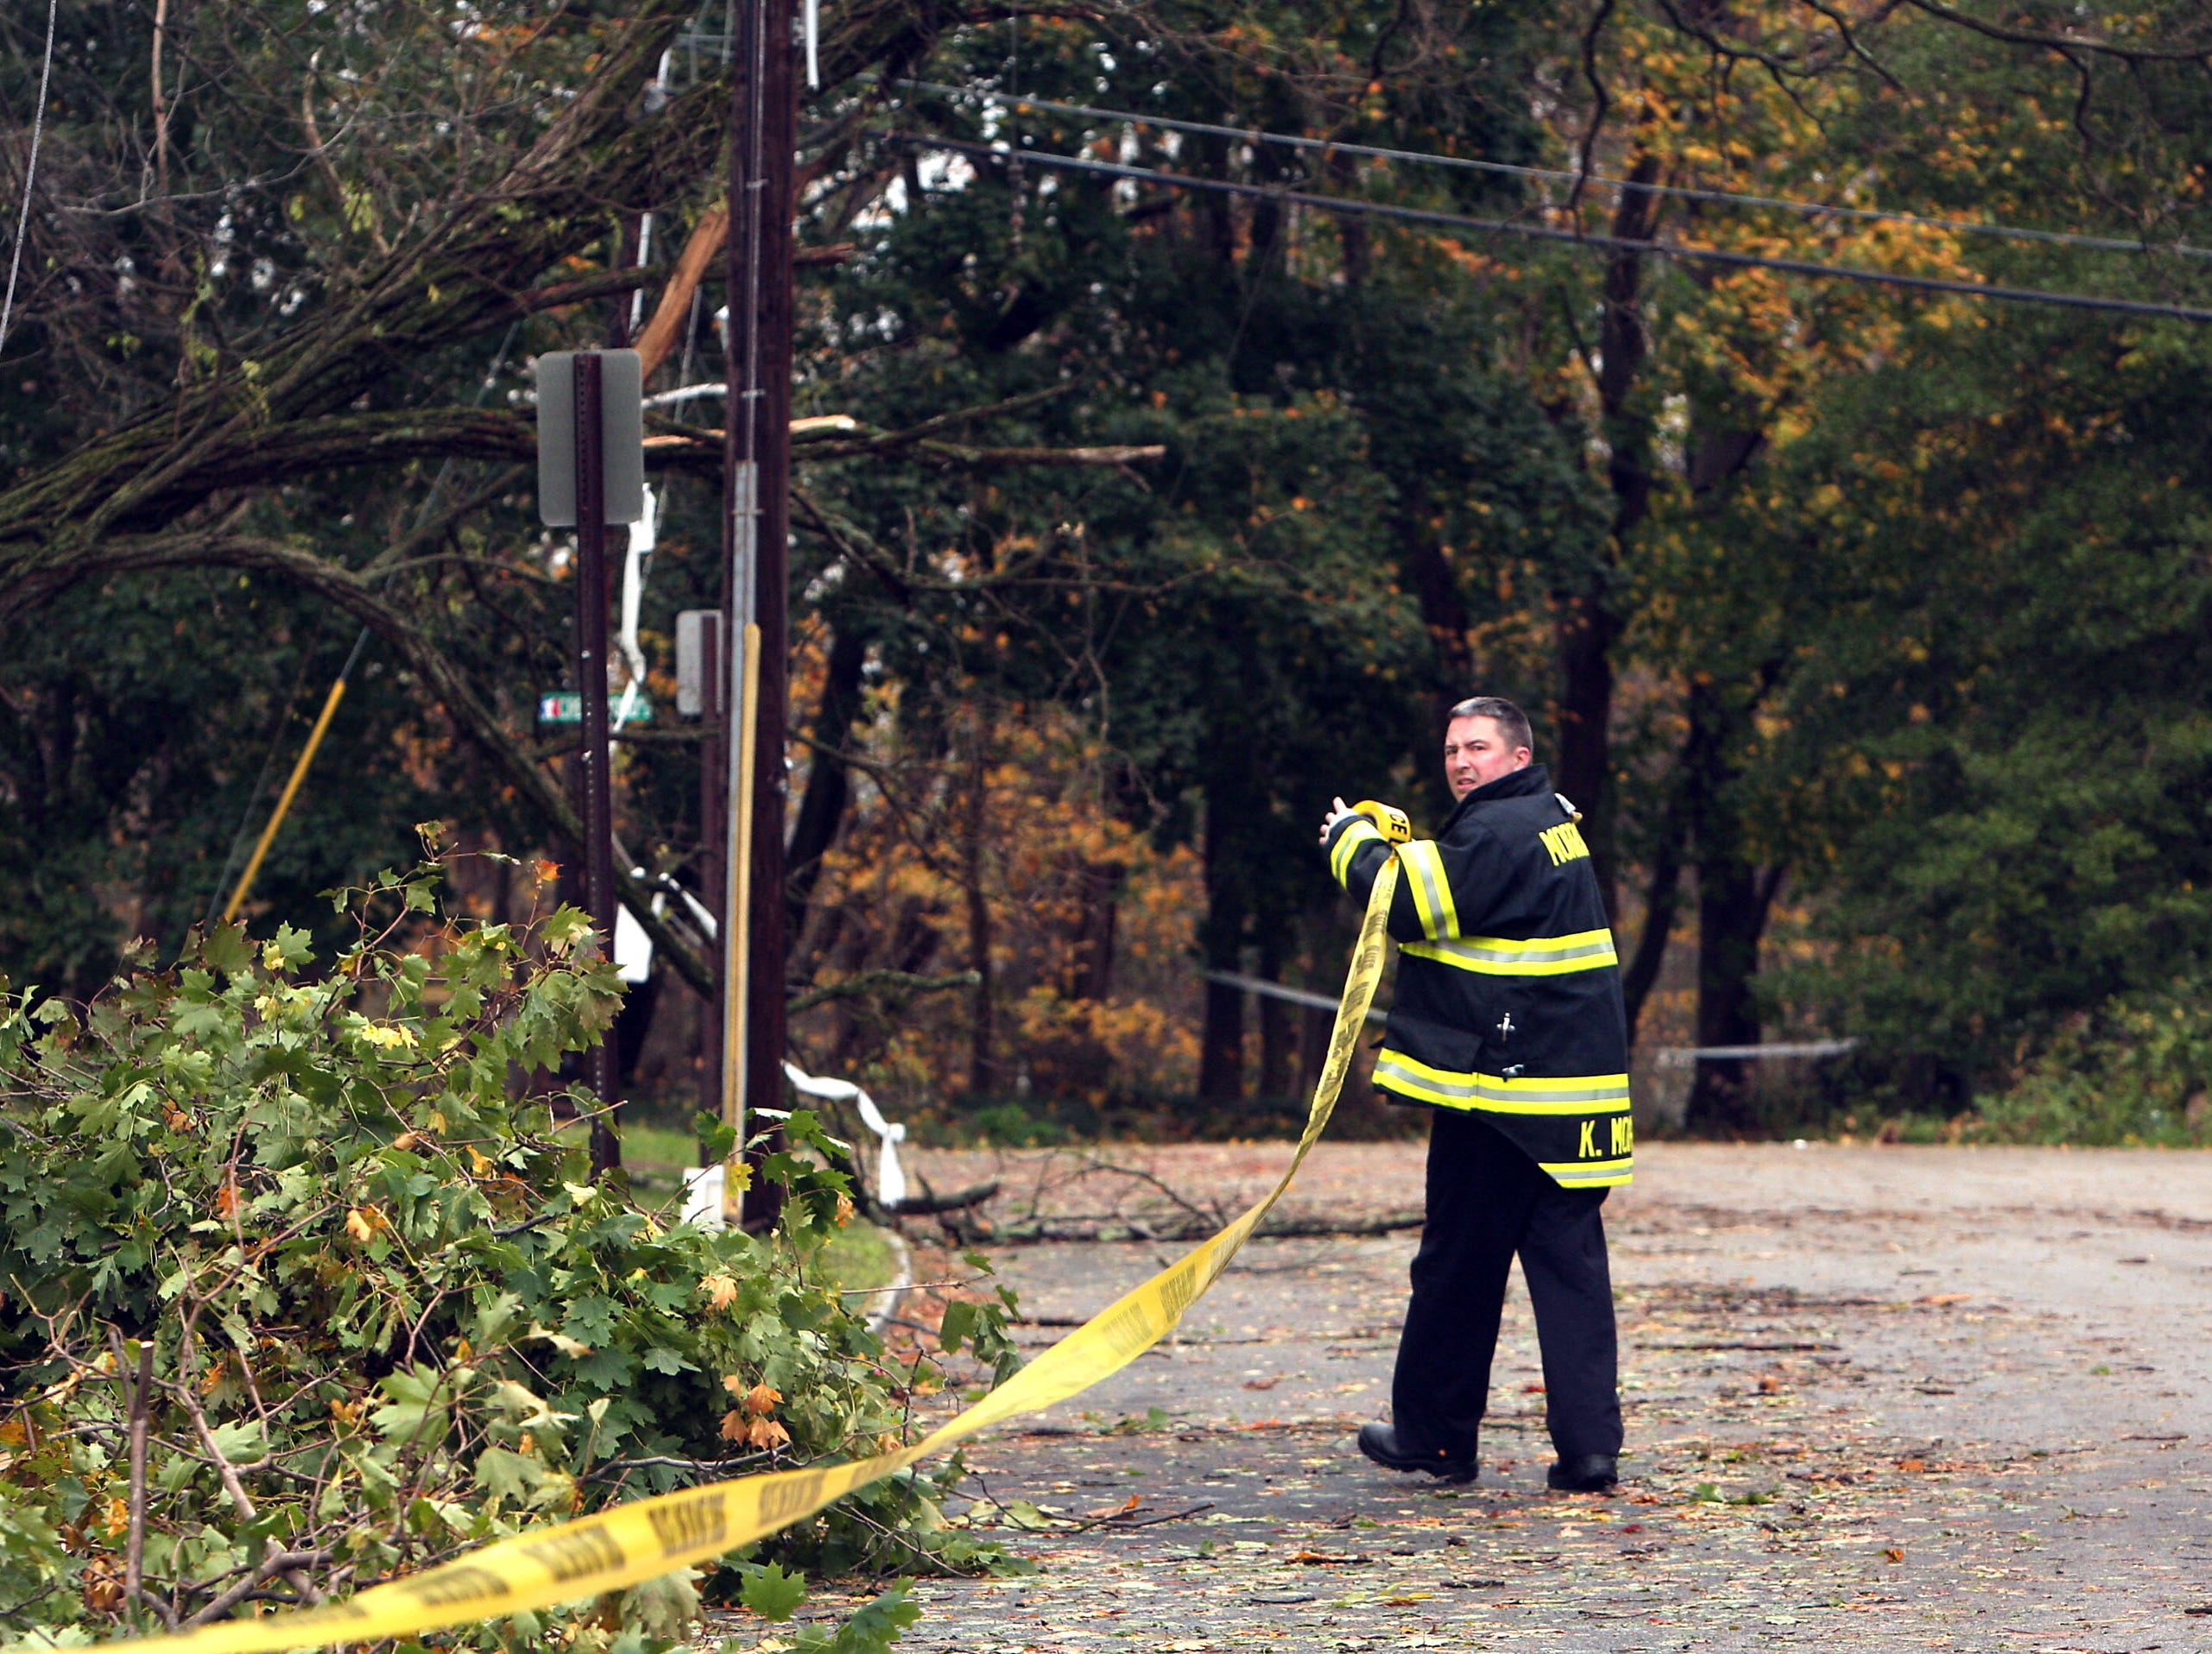 Morristown, NJ-- October 31, 2012--A Morristown Firefighter puts up emergency tape on Glenwood Road in Morristown, NJ in the aftermath of Hurricane Sandy. 